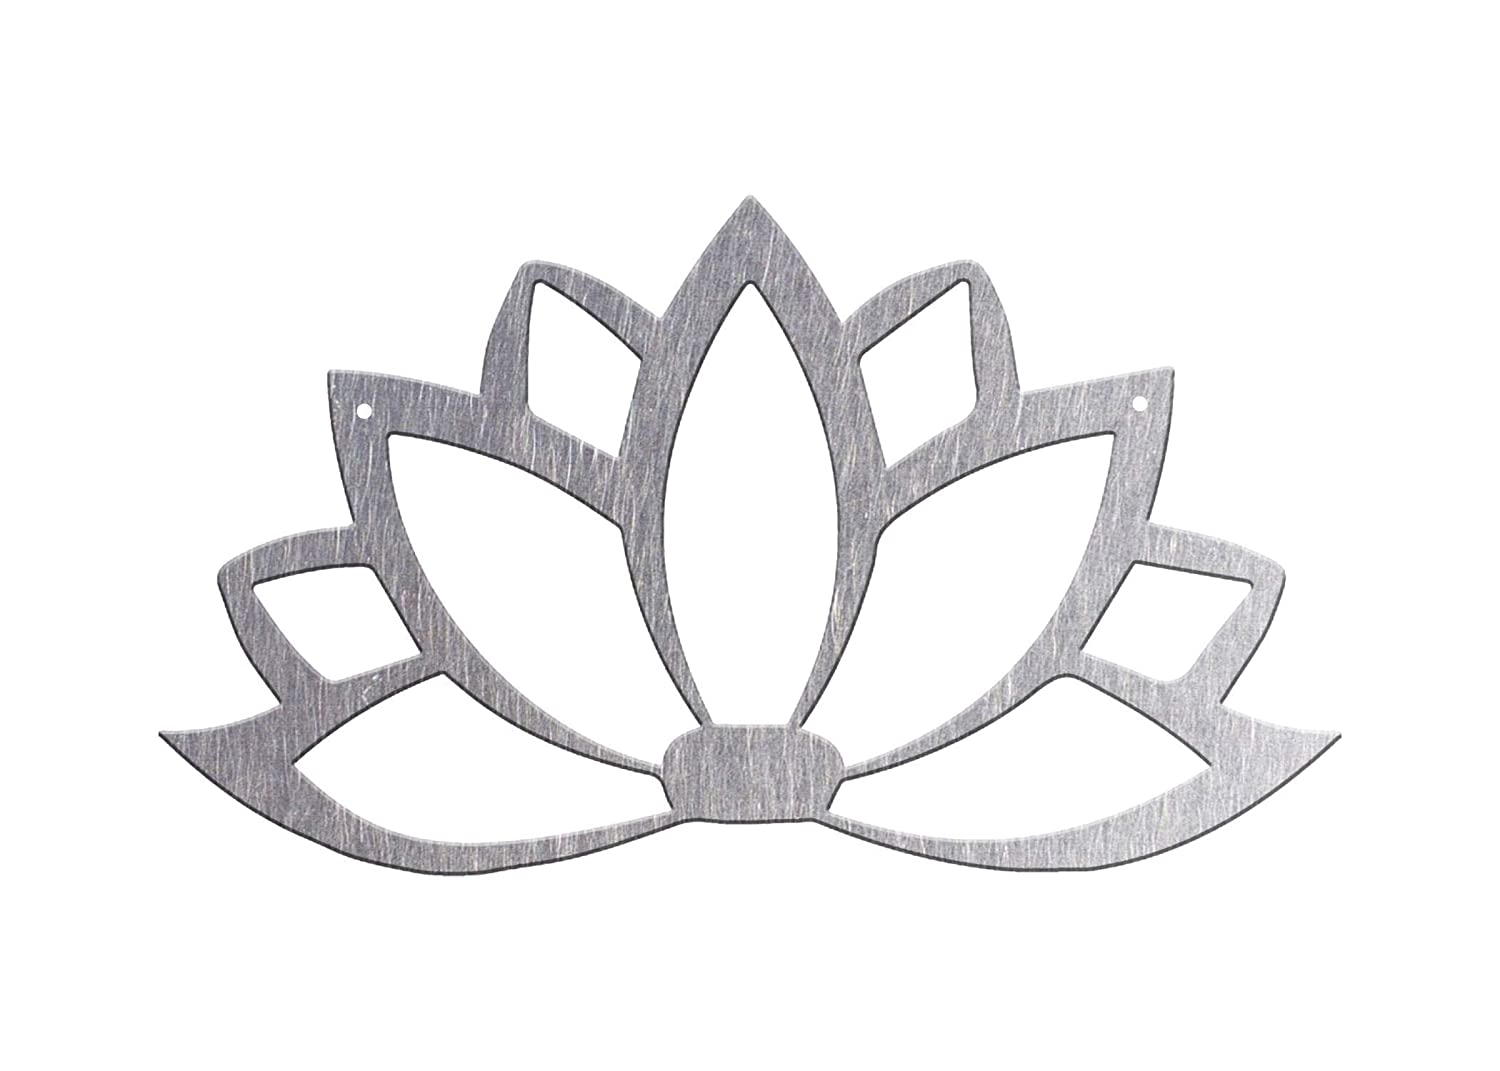 various finishes and sizes handmade in USA flower design wall sign gift for home Metal Lotus Flower steel wall hanging art decor blooming flower decal